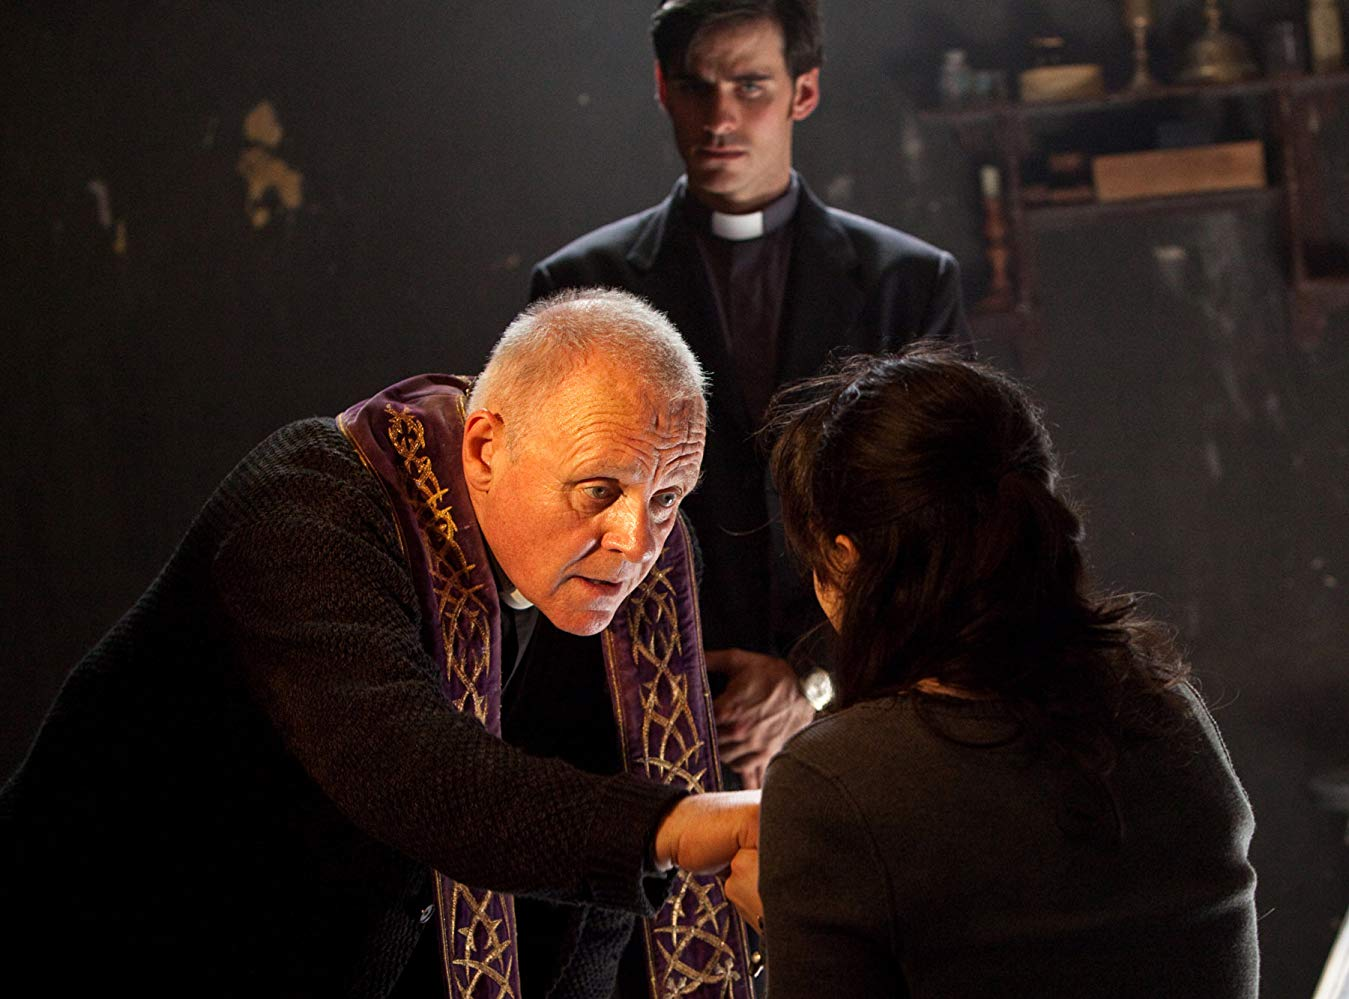 Anthony Hopkins performs the exorcism ritual with Colin O'Donoghue in the background in The Rite (2011)